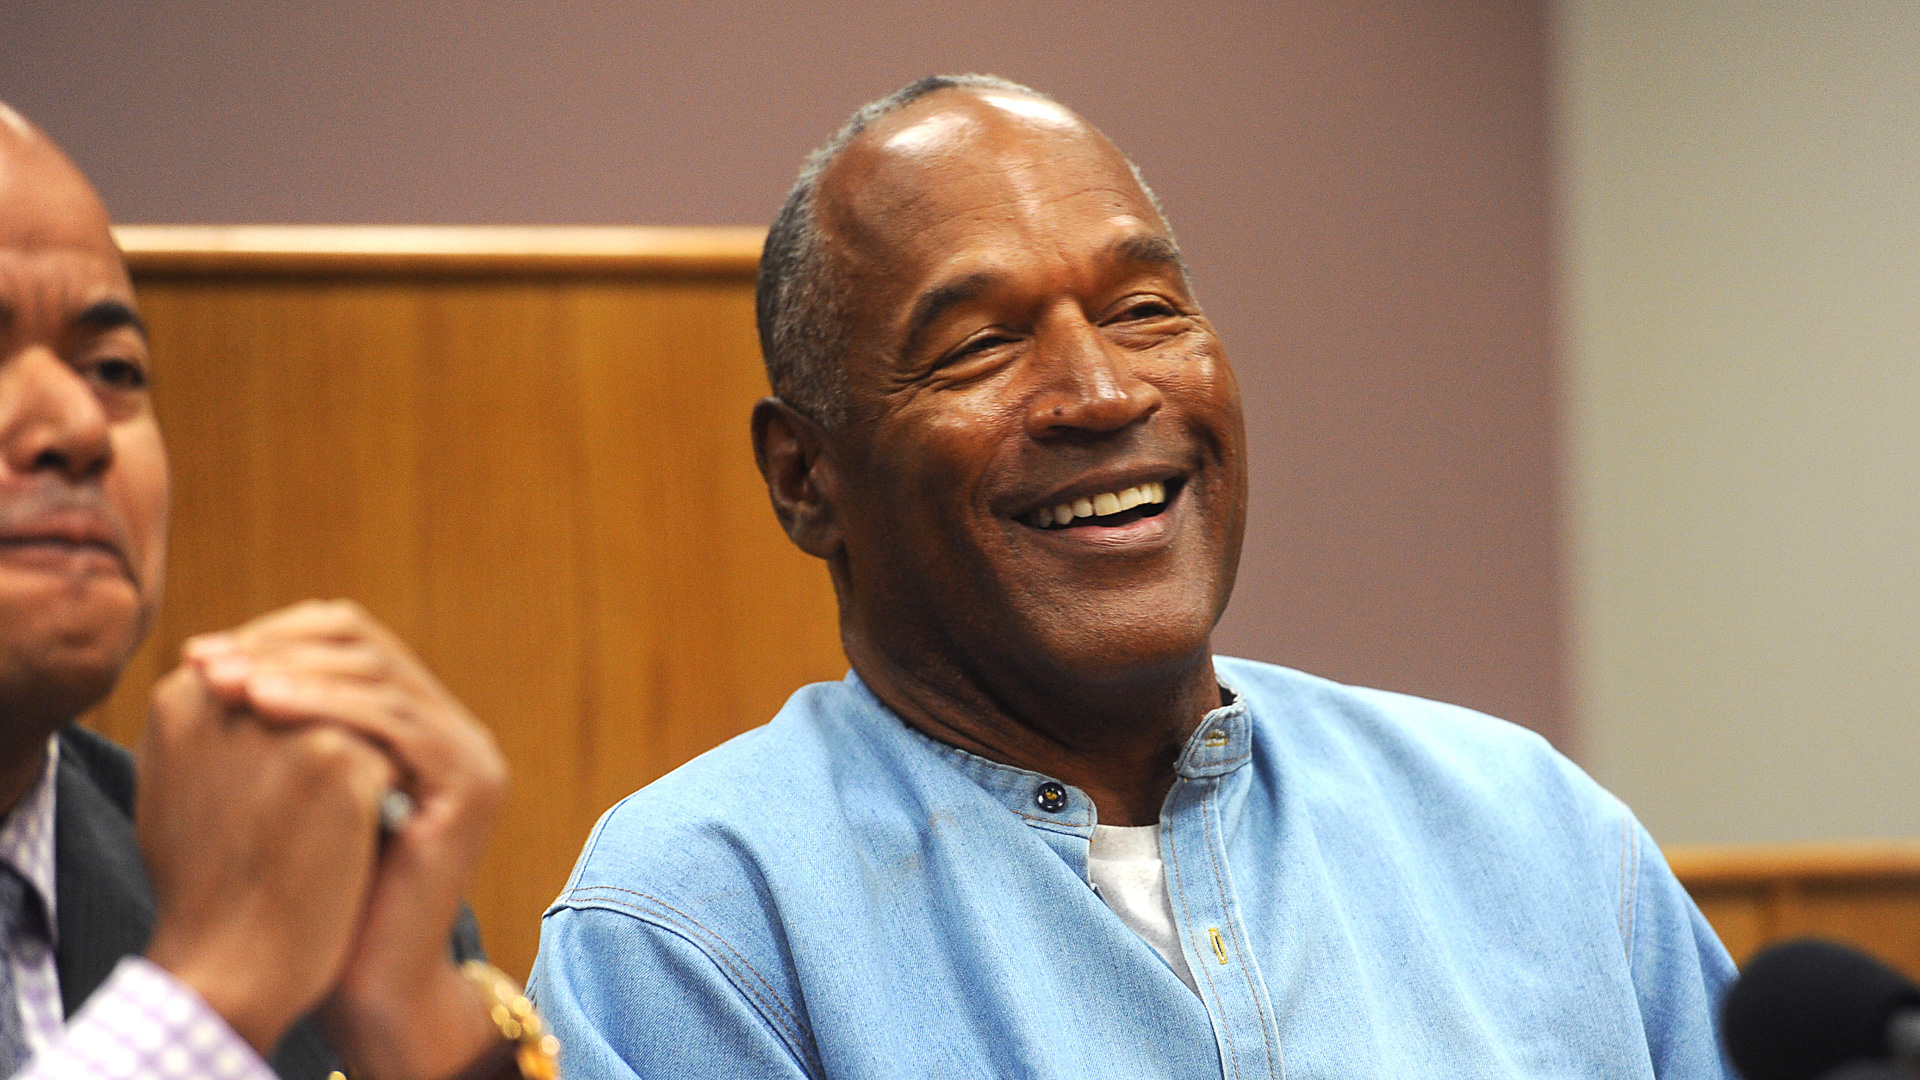 O.J. Simpson's Net Worth as He's Granted Parole